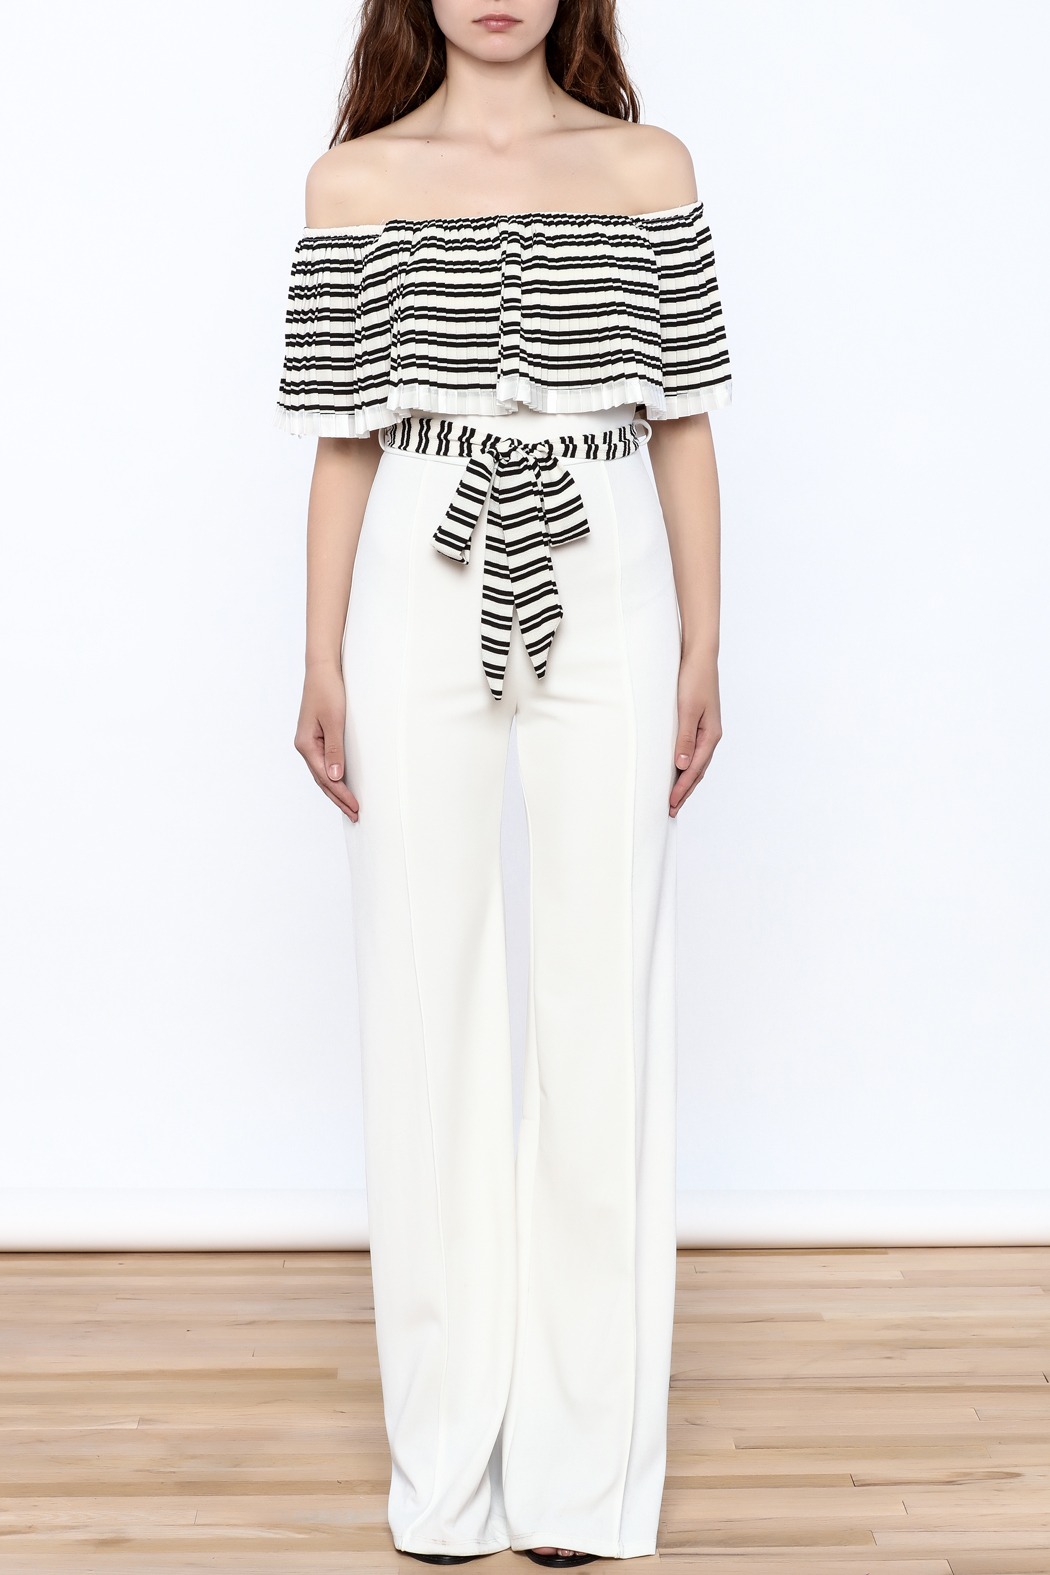 Valentine Striped Top Jumpsuit - Front Cropped Image